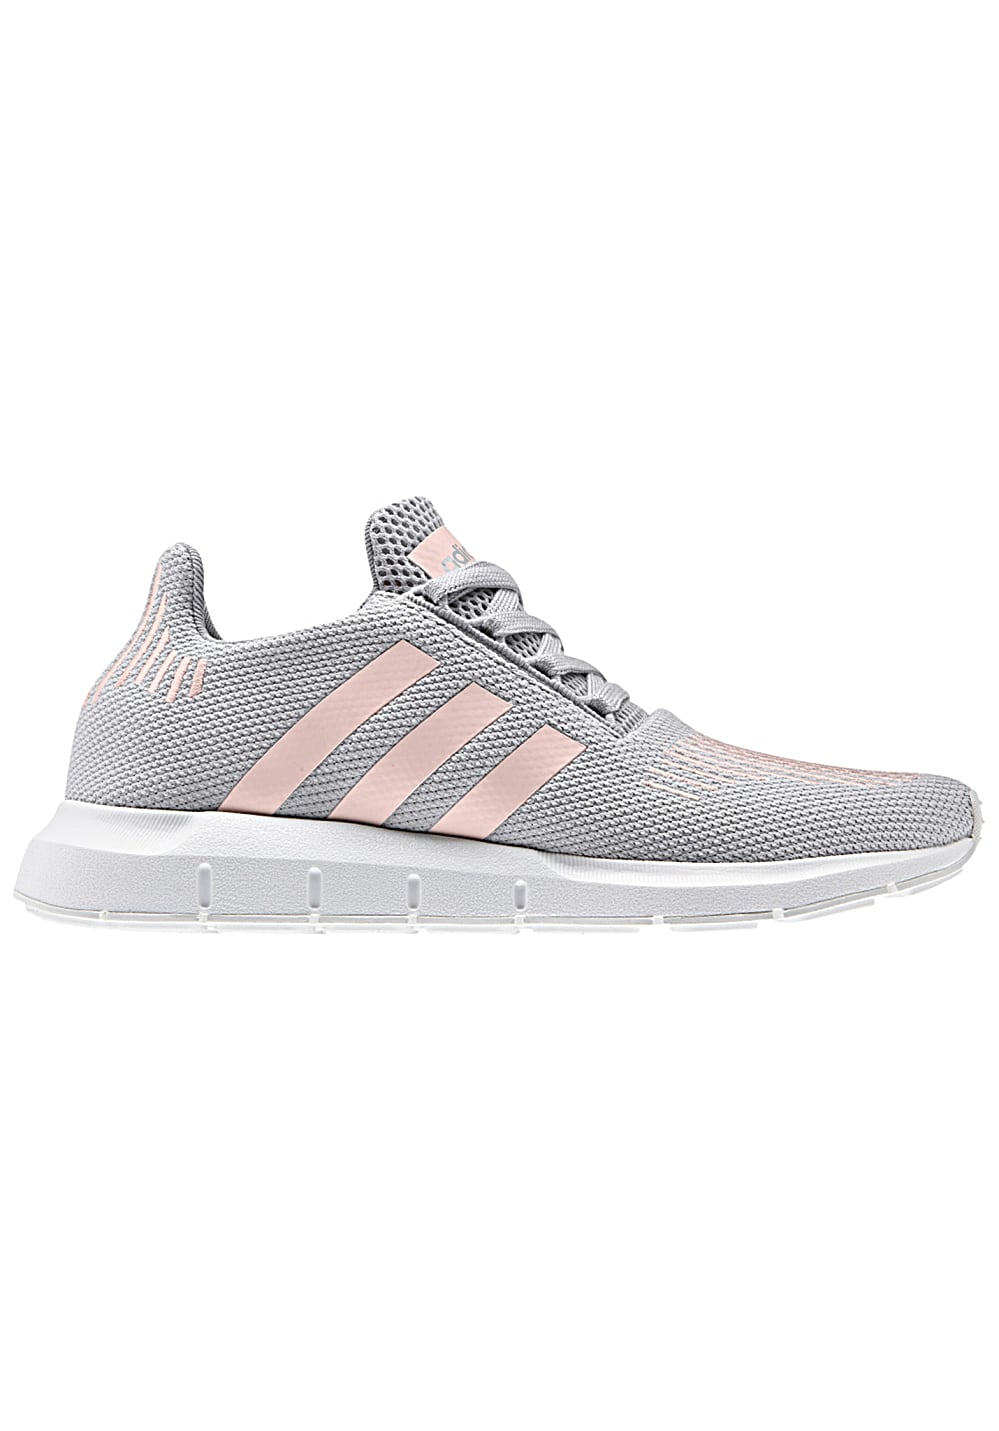 adidas Originals Swift Run - Sneaker für Damen - Grau